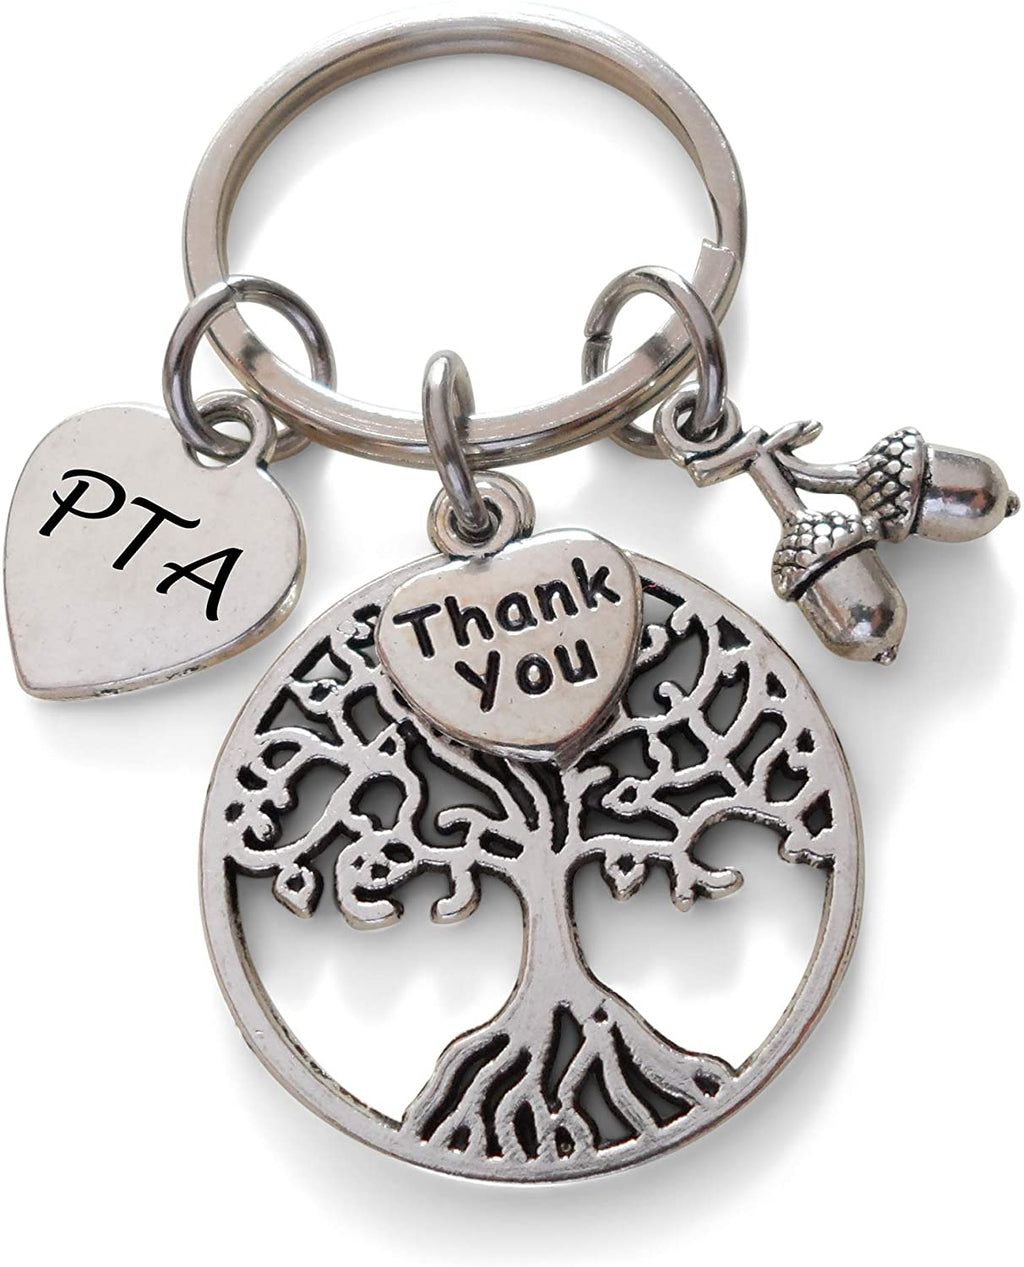 "Volunteer Appreciation Gifts • PTA Heart, Tree, ""Thank You"" & Acorn Seeds Charms by JewelryEveryday w/ ""Thanks for helping our students grow"" Card"